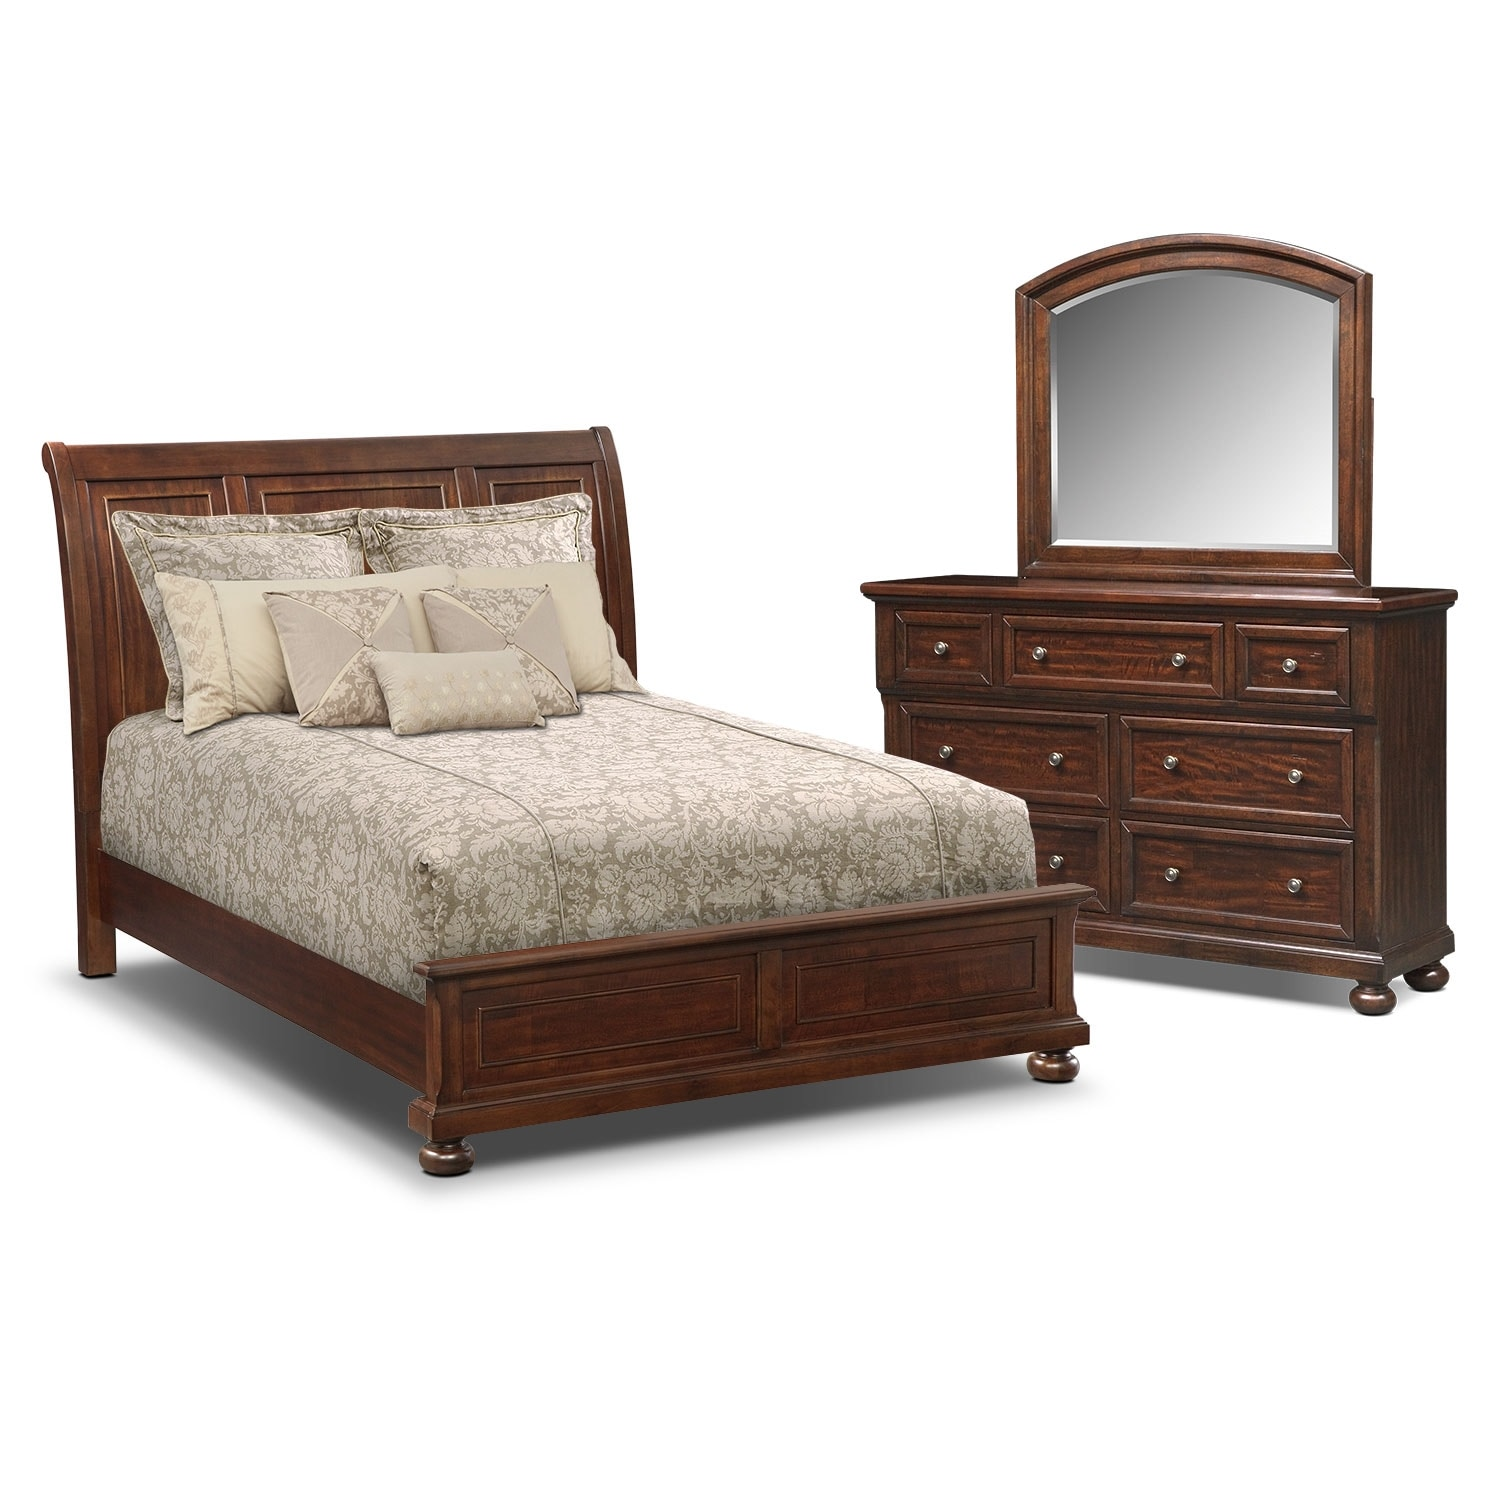 Hanover 5-Piece King Panel Bedroom Set - Cherry